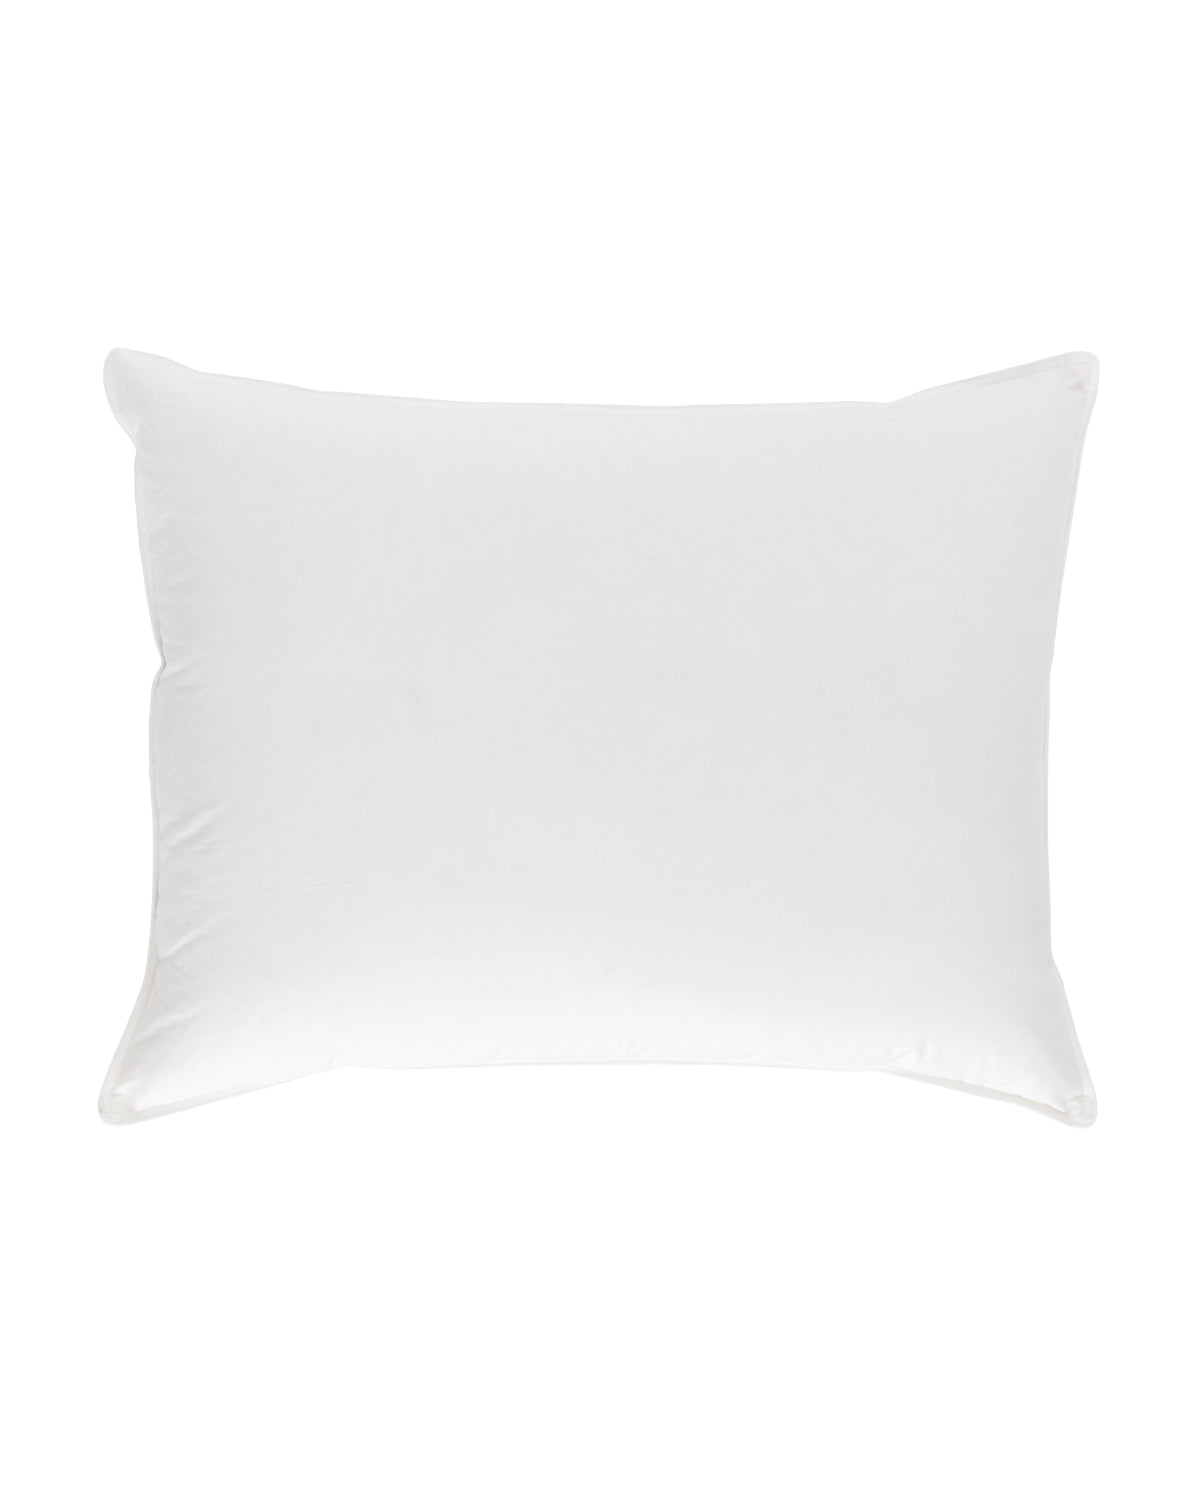 Sateen Goose Down Pillow